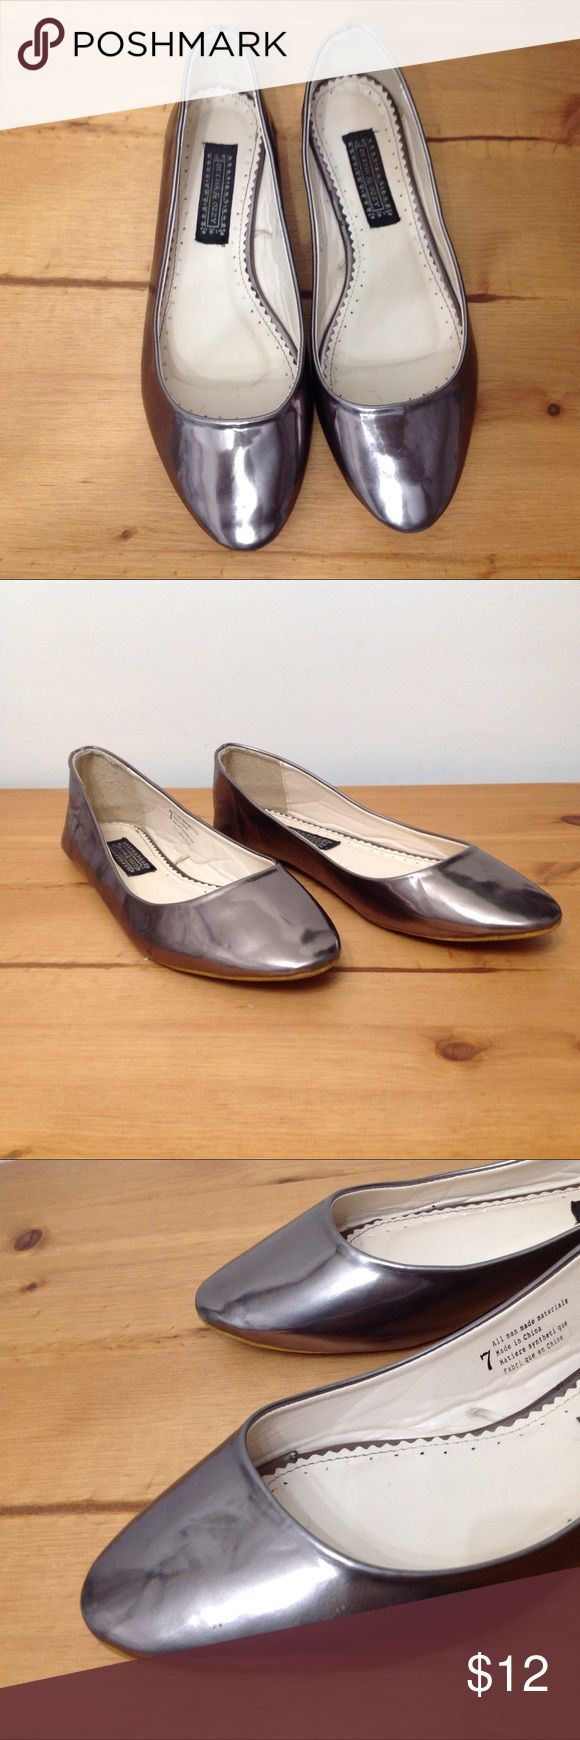 Mirror Flats size 7 Deena & Ozzy Pre-loved Deena & Ozzy ballerina flats in good condition. Some scuffs as pictured but overall great condition. Size 7. Super fast same day or next business day shipping!! Deena & Ozzy Shoes Flats & Loafers